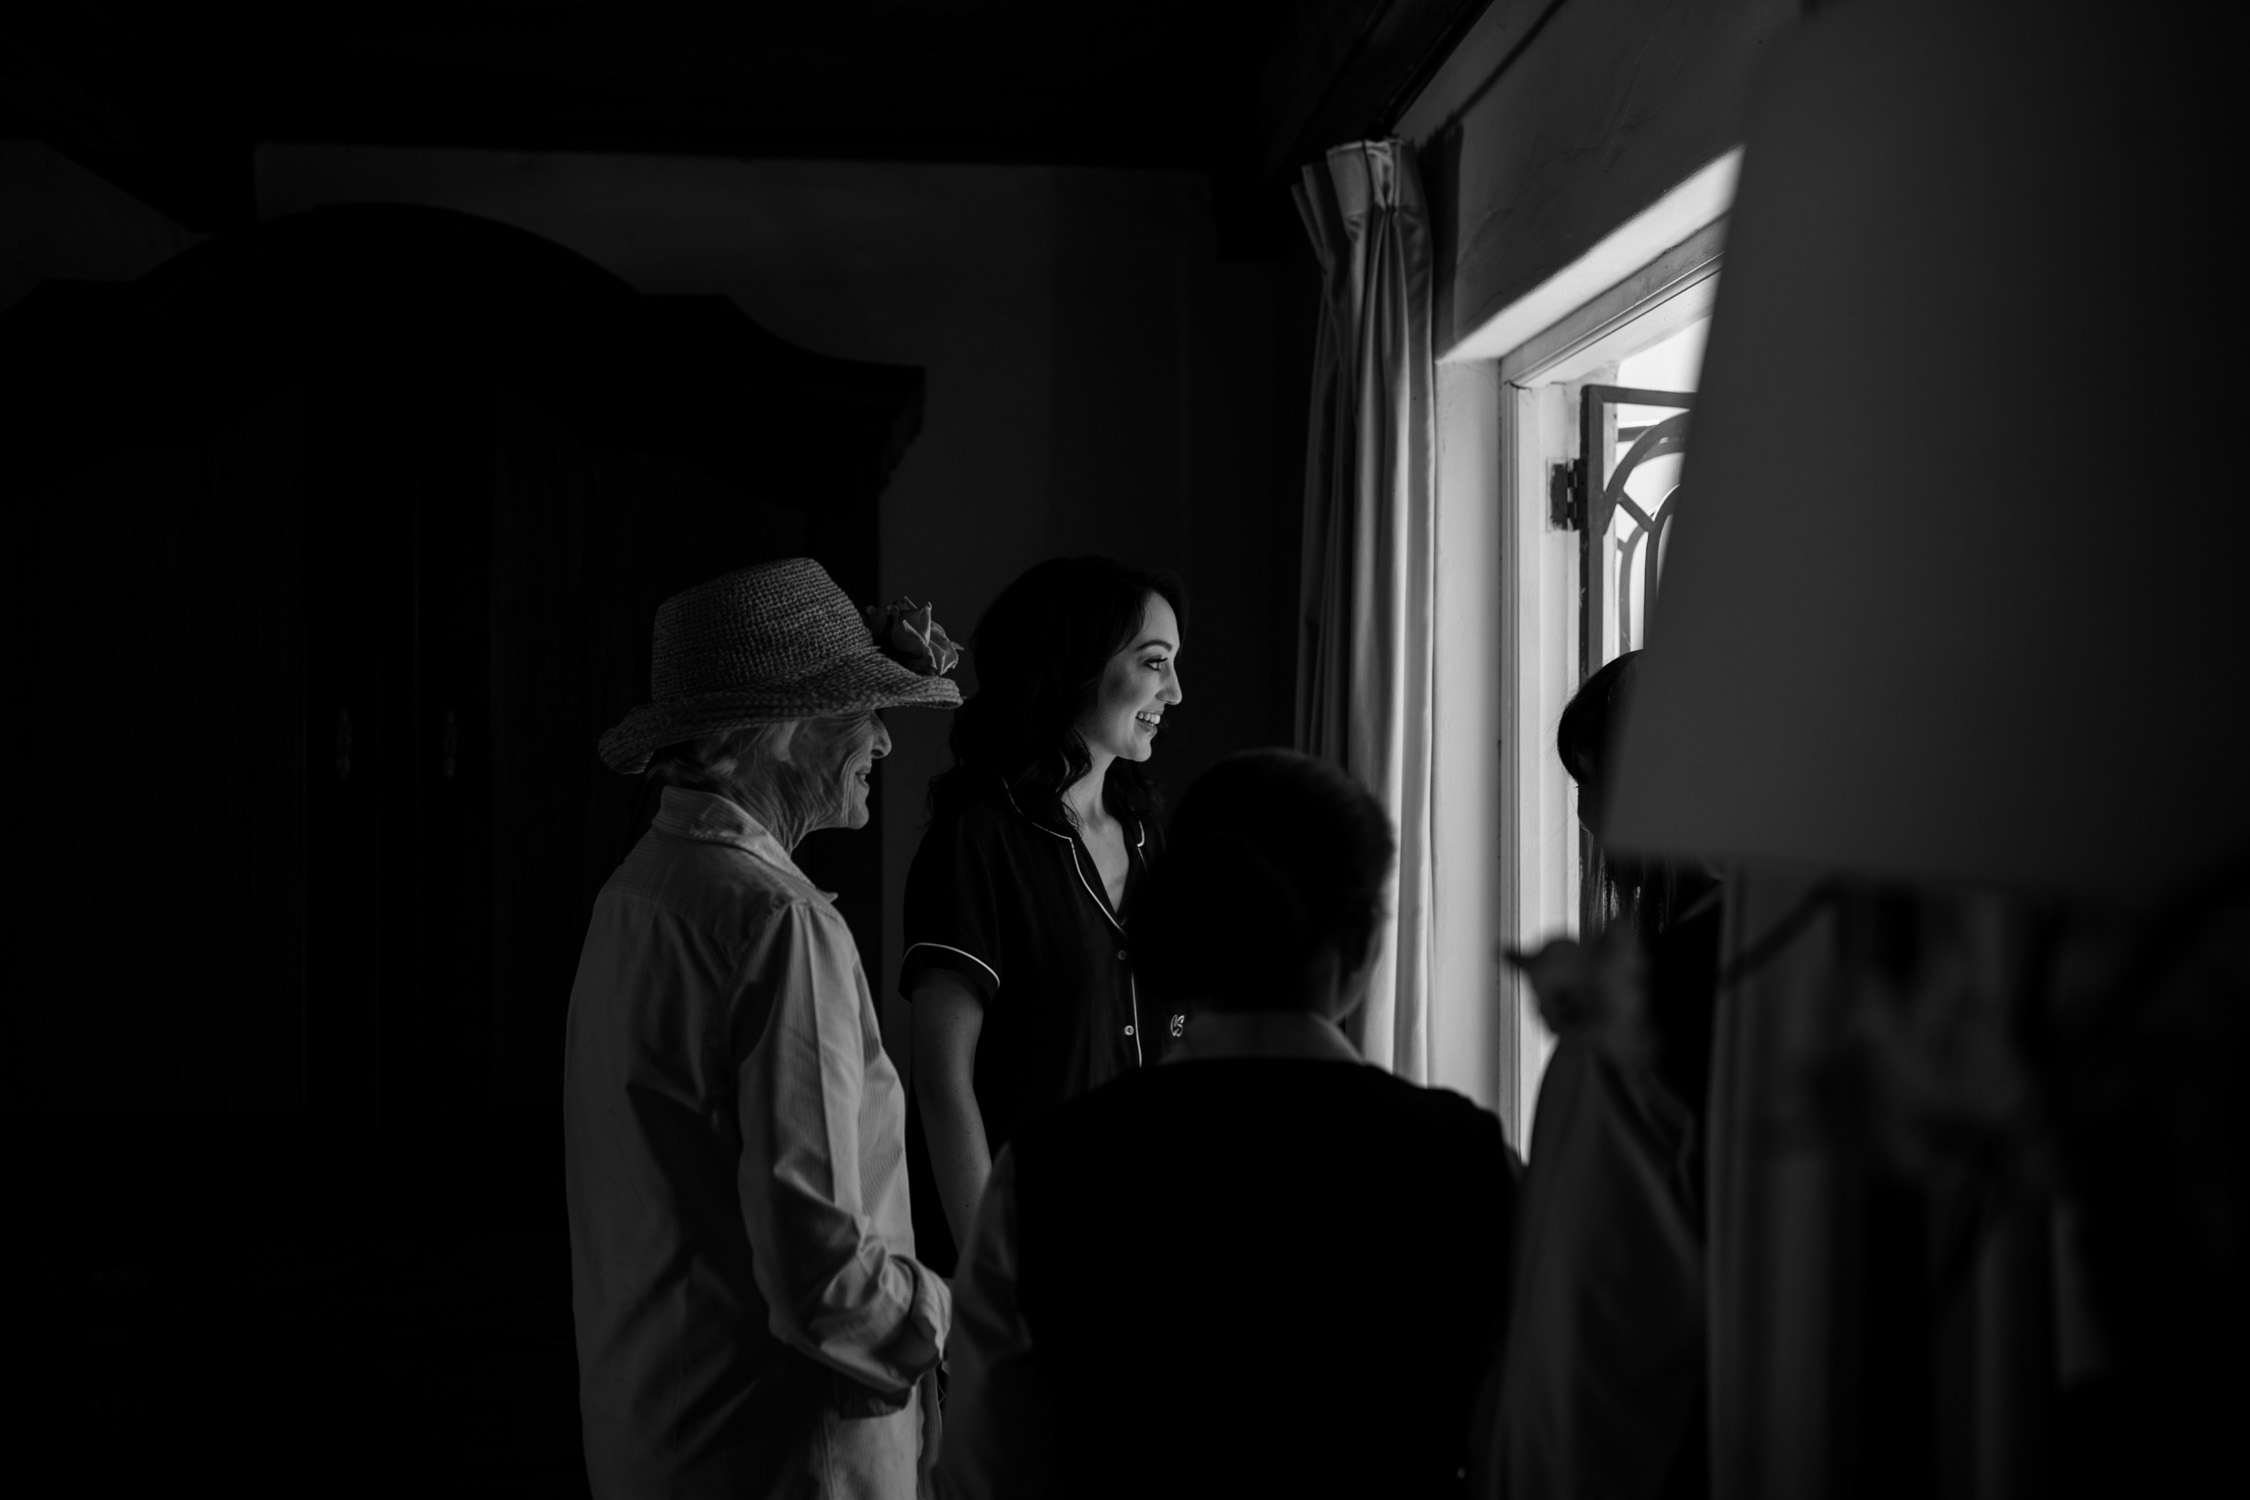 Black and white photojournalistic wedding photo